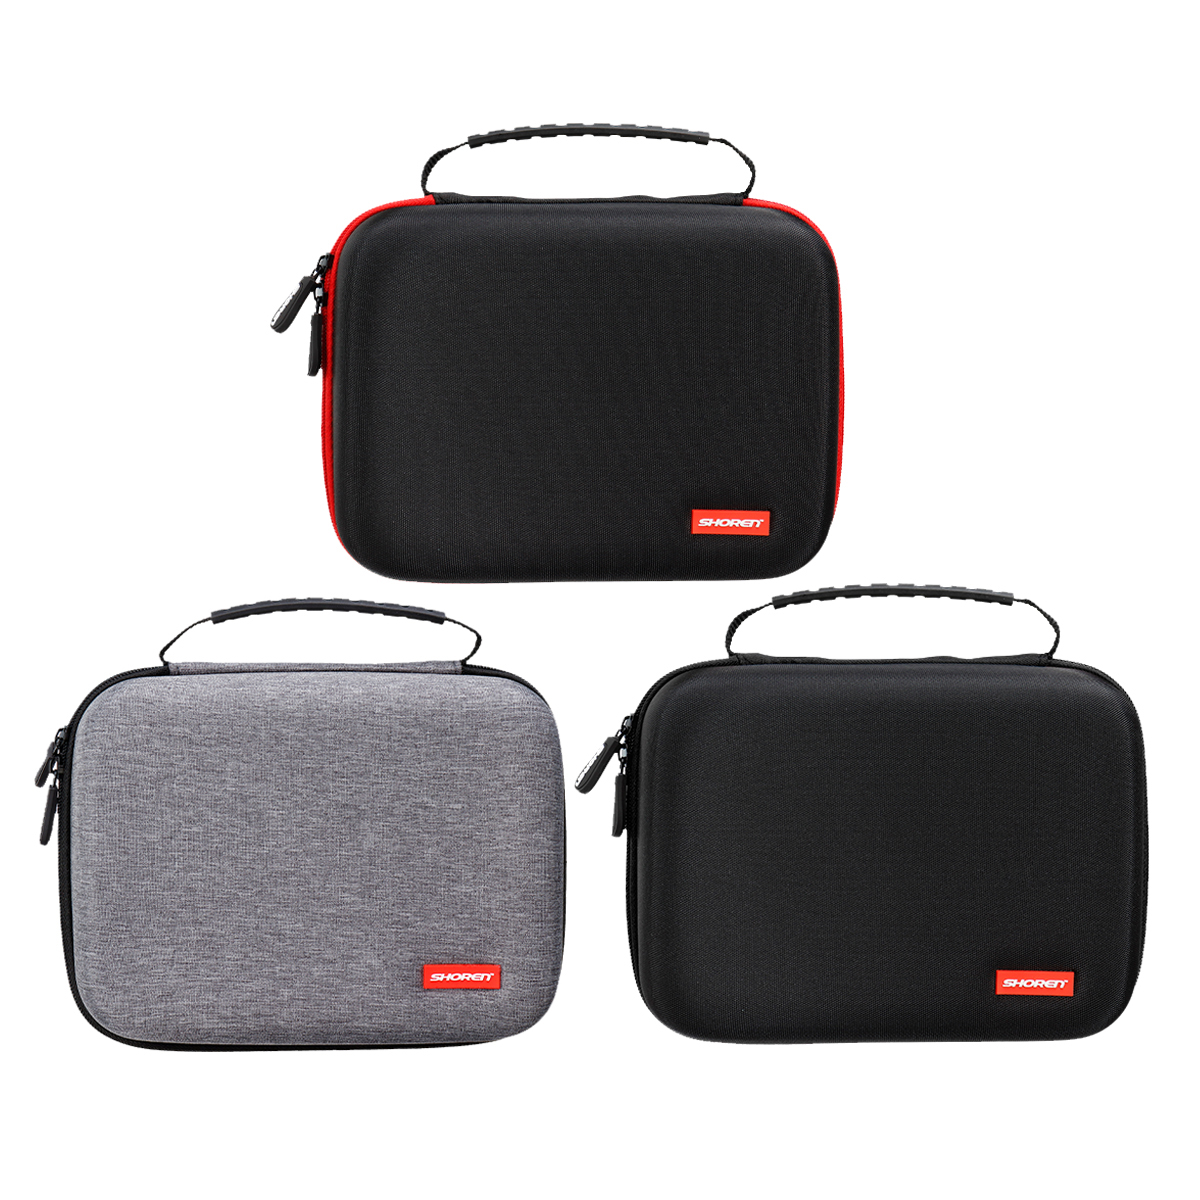 Portable Hard EVA Case Carry Storage Box + 2 x Connector For Oculus Go VR Headset for Game Console